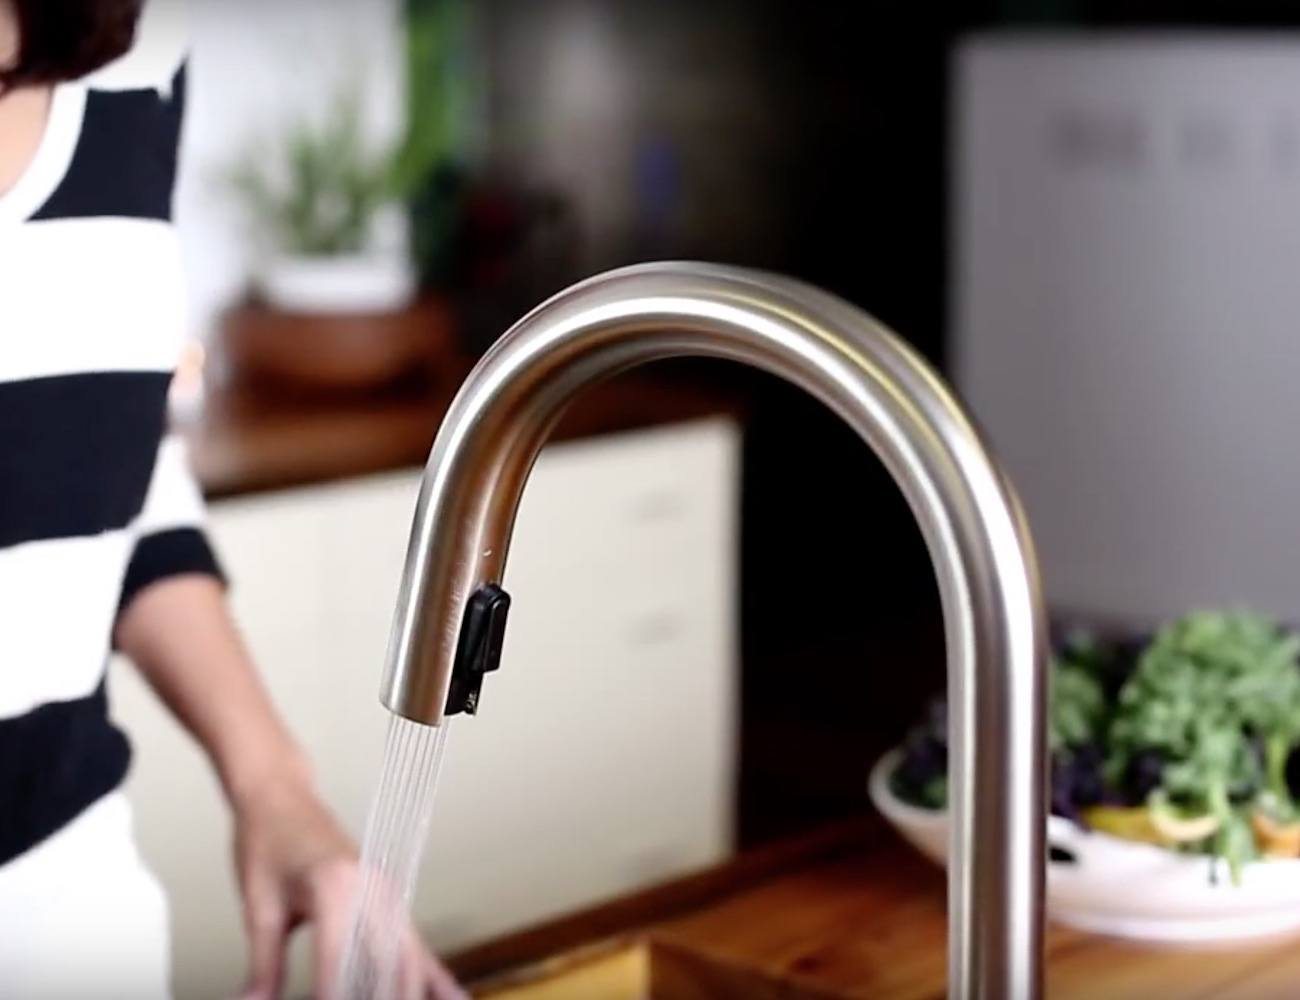 Solna SmartTouch Faucet by Brizo